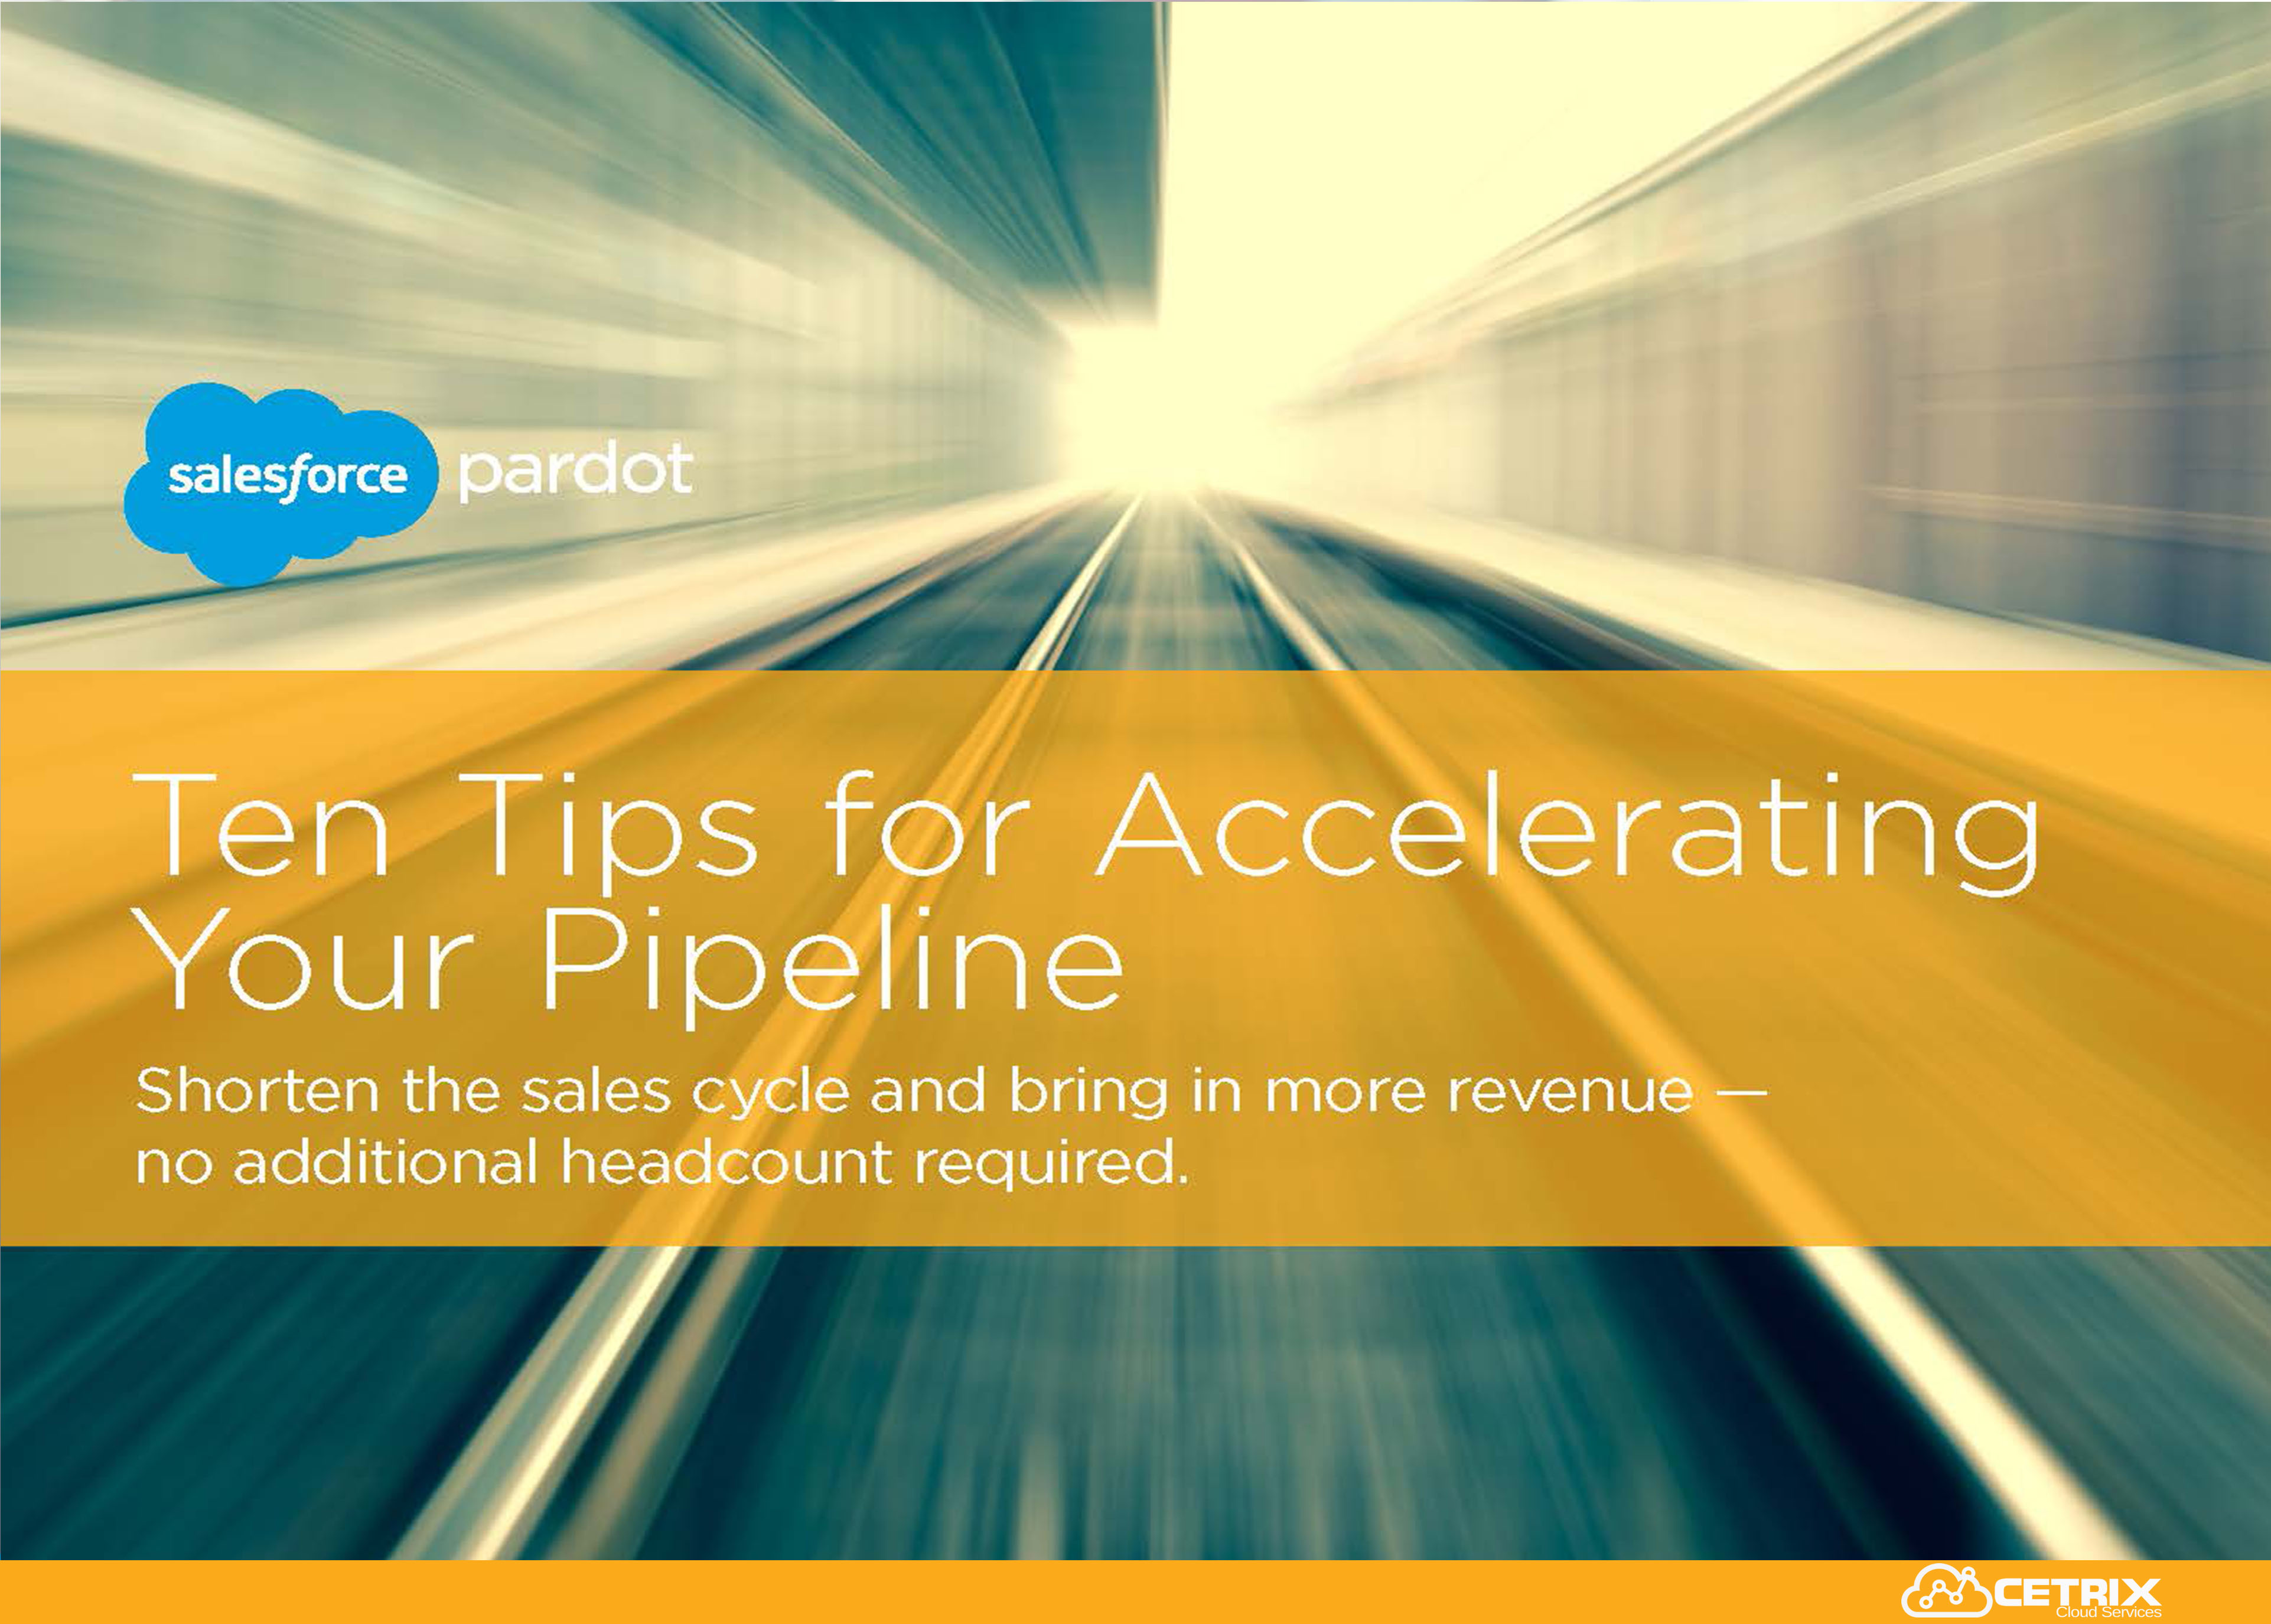 Pardot_10Tips_Accelerating_Pipeline